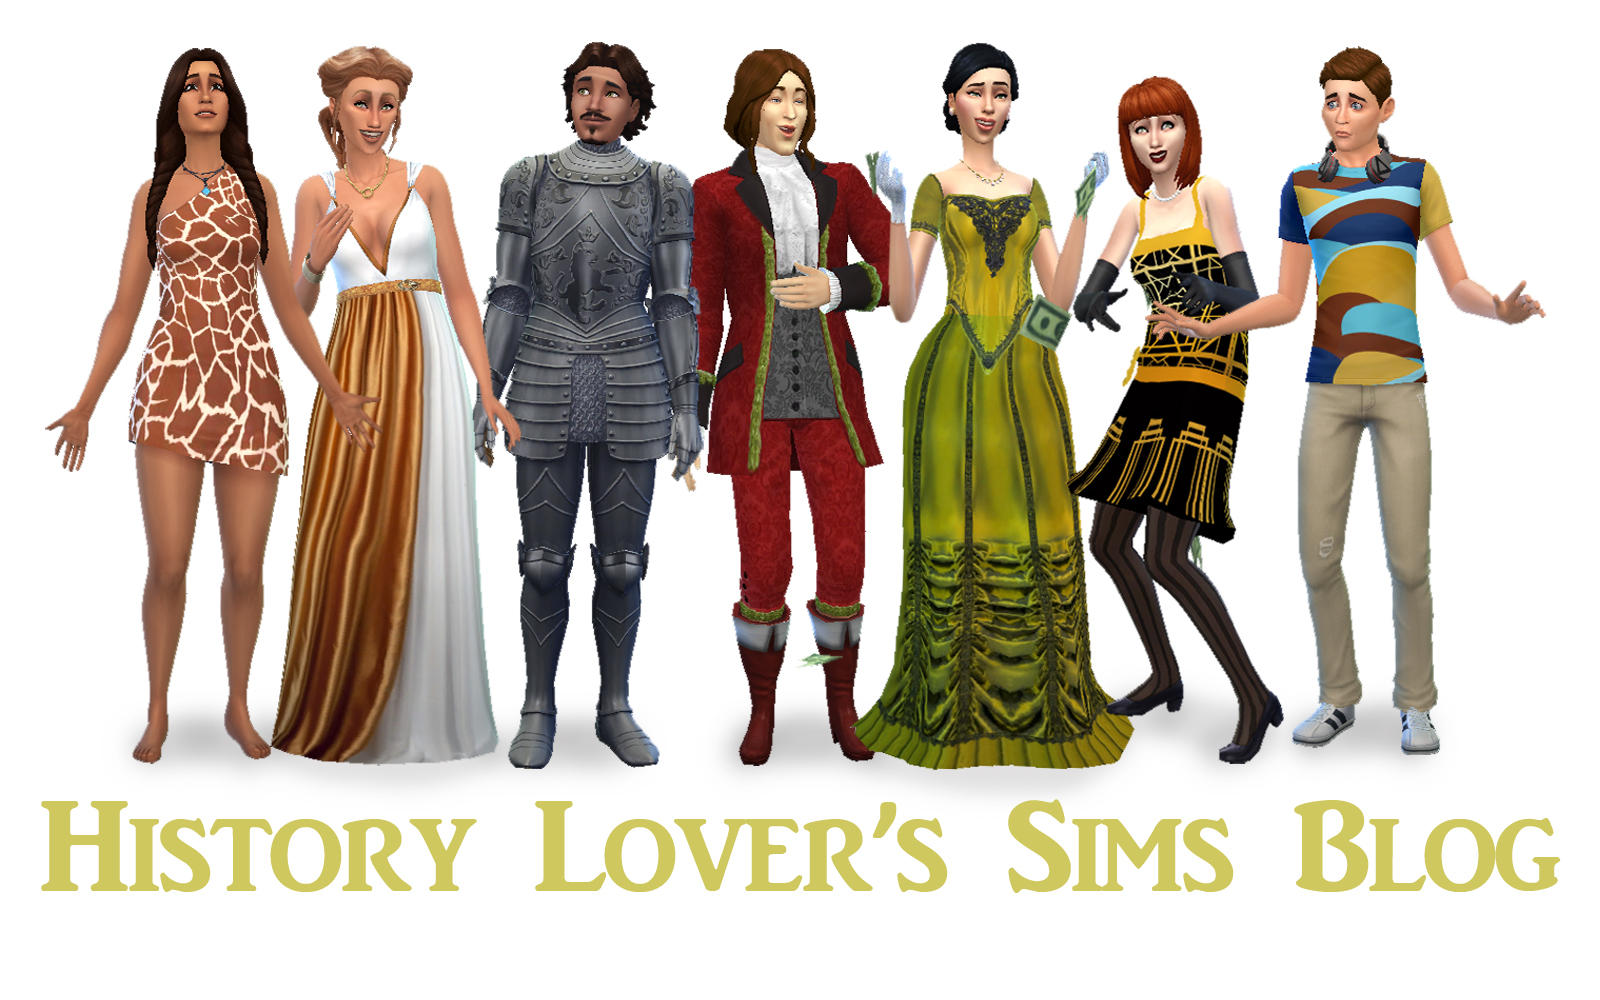 Sims medieval mods adult anime photos